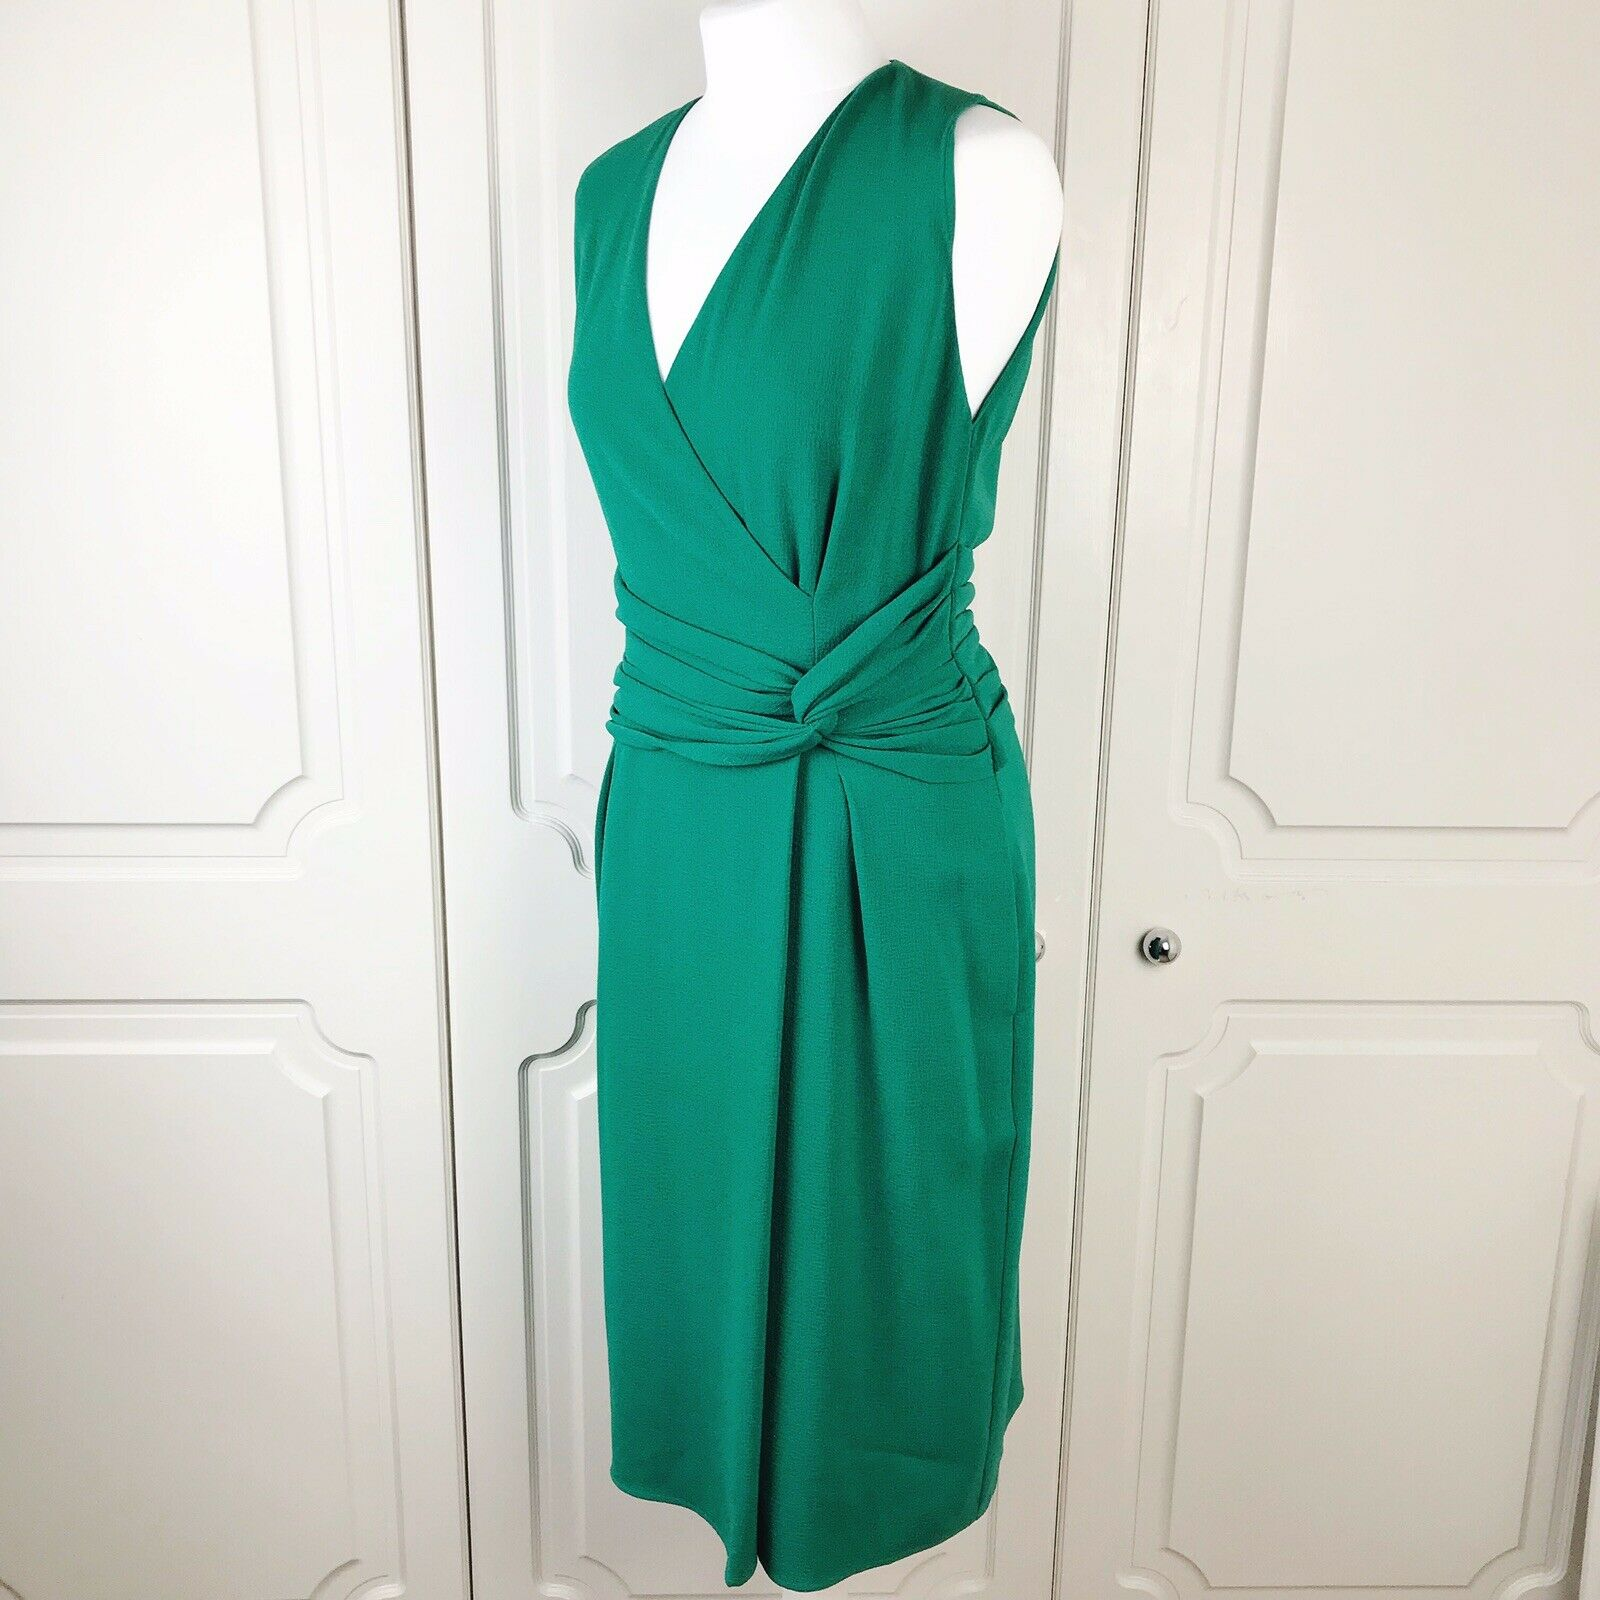 Whistles Emerald Green Textured Crepe Ivy Twist Shift Dress Size 12 VGC